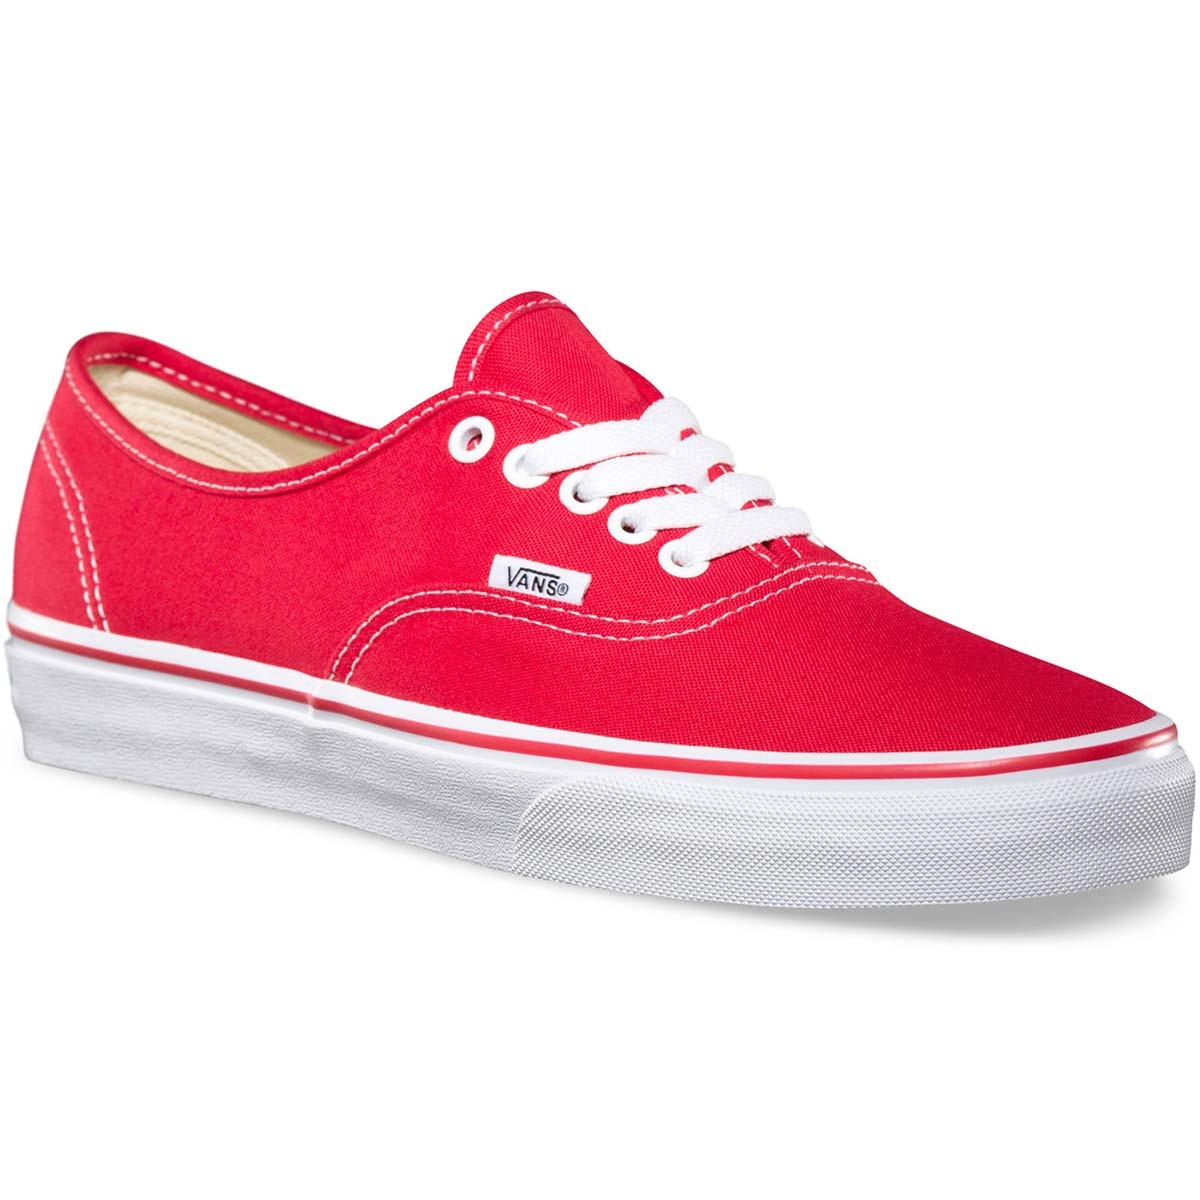 Vans Original Authentic Shoes - Red 13.0